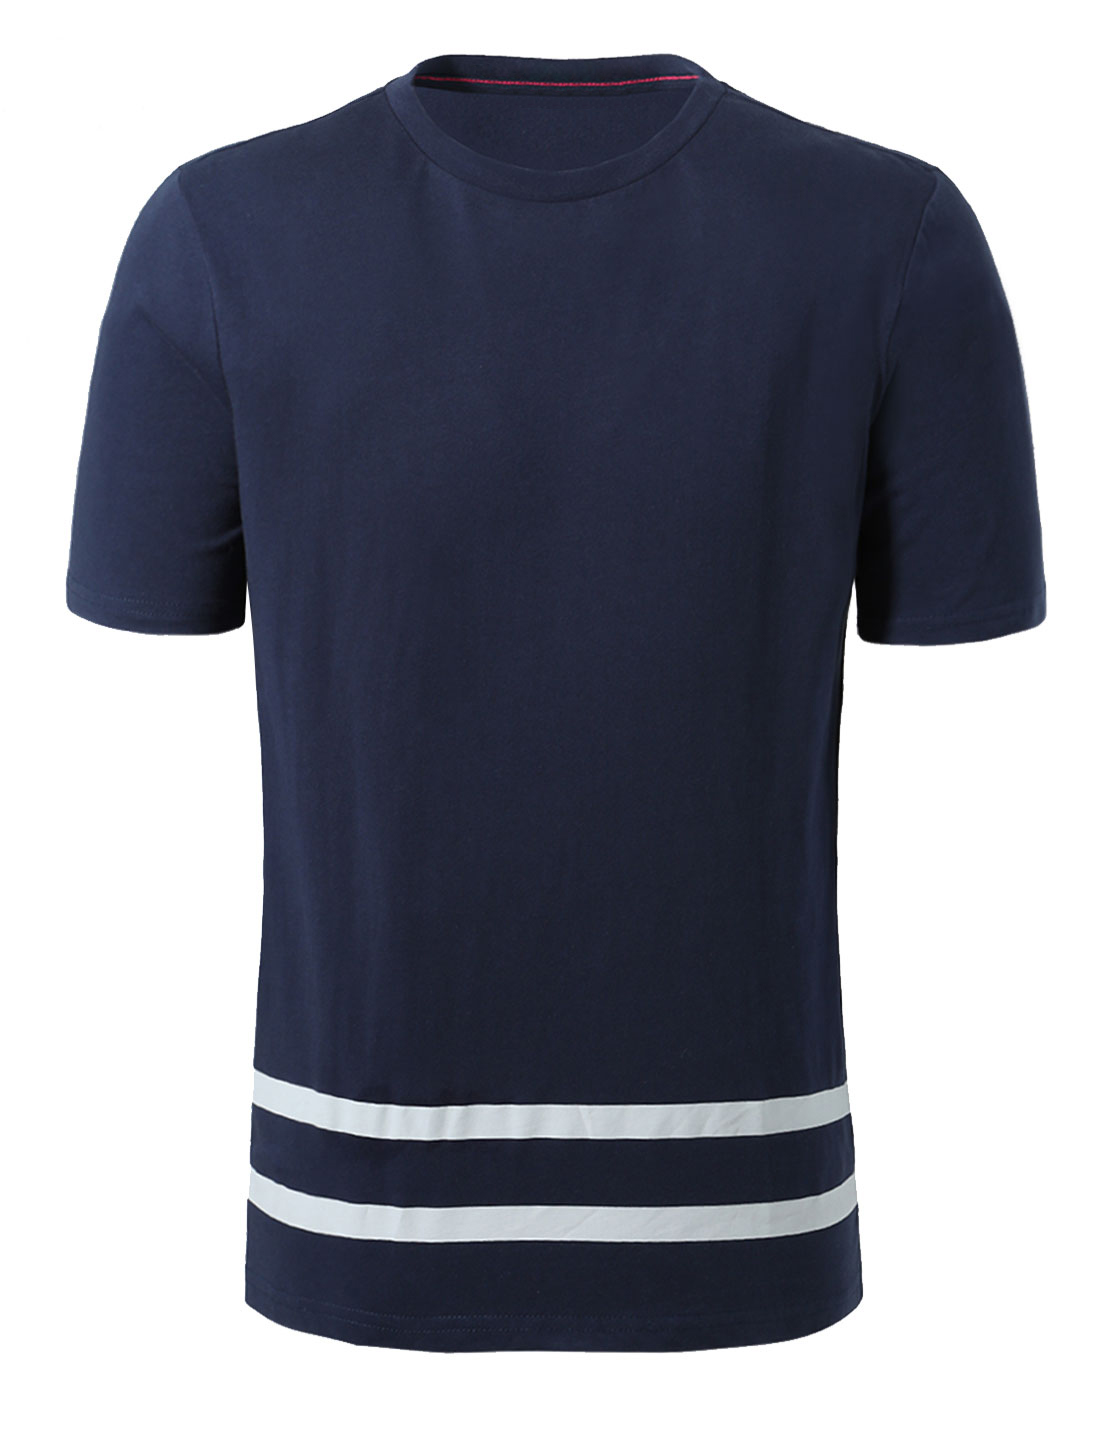 Men Short Sleeves Round Neck Striped Hem Cotton T-Shirt Navy Blue L